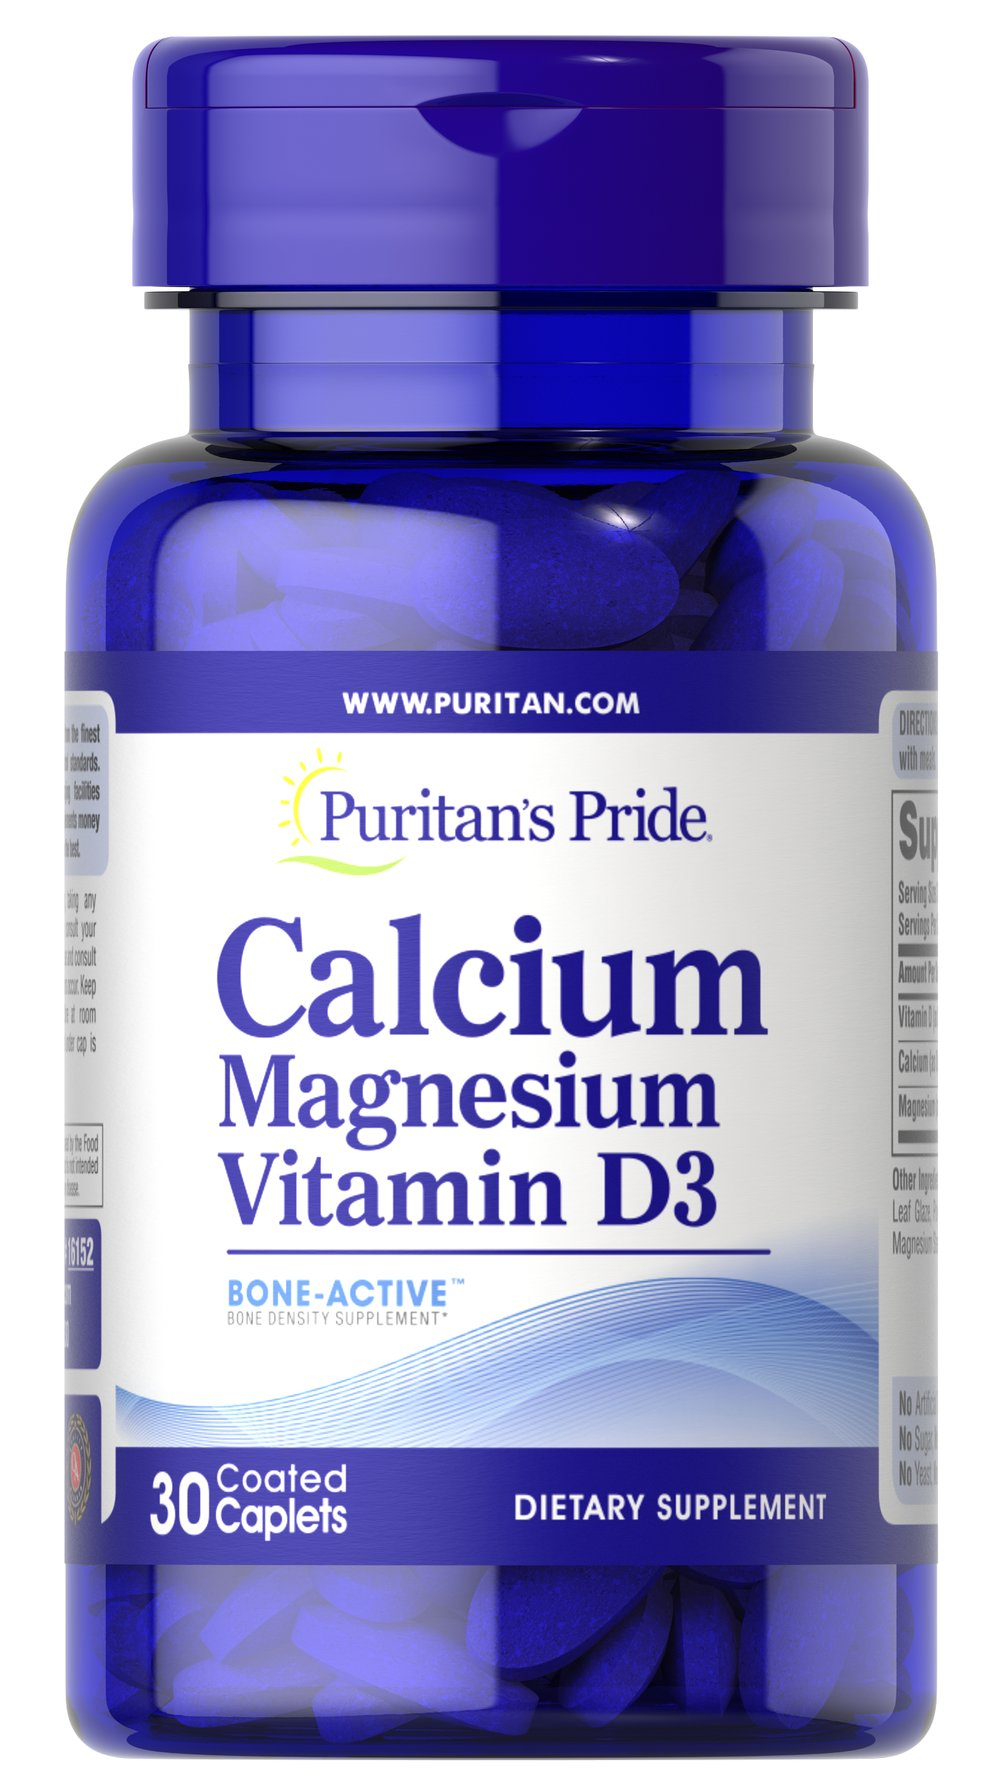 "Calcium Magnesium with Vitamin D <p>Give your bones a sample of one of the best combinations in <a href=""/bone-health-241?searchterm=bone%20health&rdcnt=1"">bone health</a> .*</p> <p><span></span> Calcium, Magnesium, and Vitamin D are essential for strong bones, plus this formula helps support a healthy immune system, colon health, and more.* </p> 30 Caplets  $1.39"